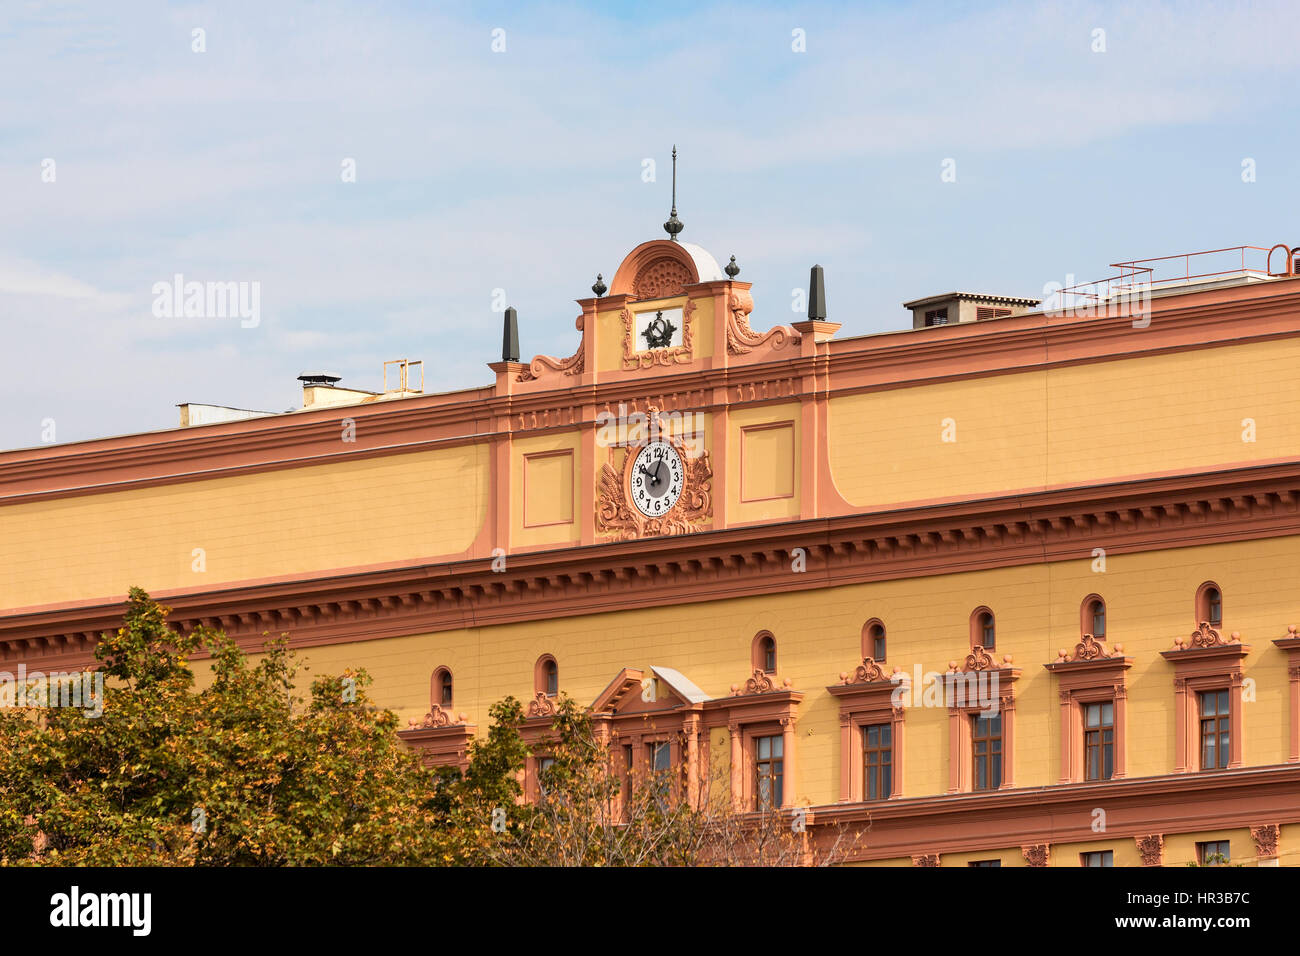 Closeup of the Lubyanka Building, former KGB headquarters in Moscow, Russia. Stock Photo